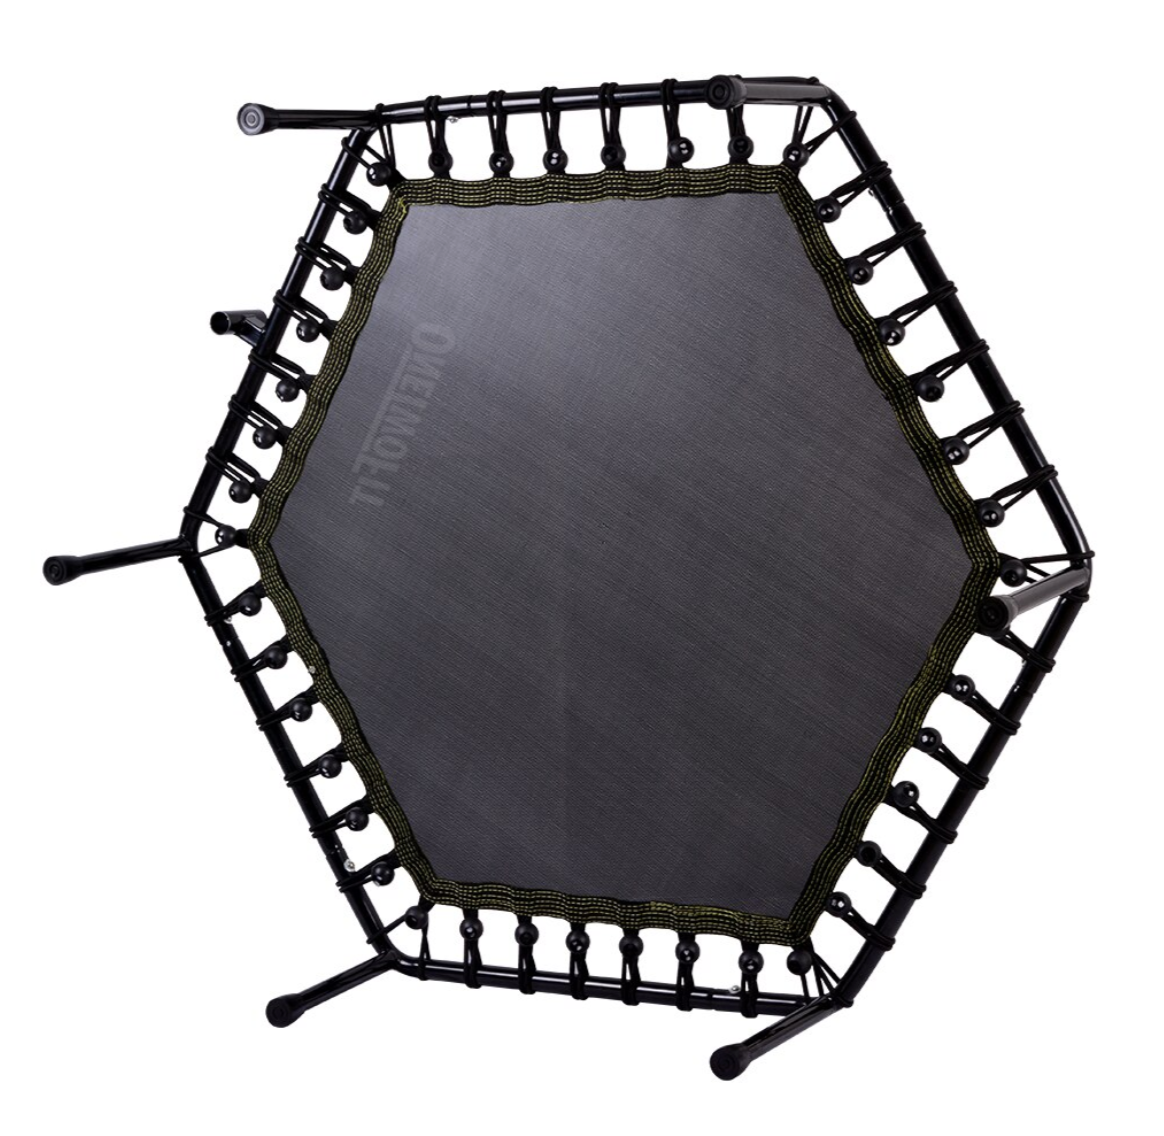 OneTwoFit Silent Springless Mini Exercise Trampoline For Adults Indoors